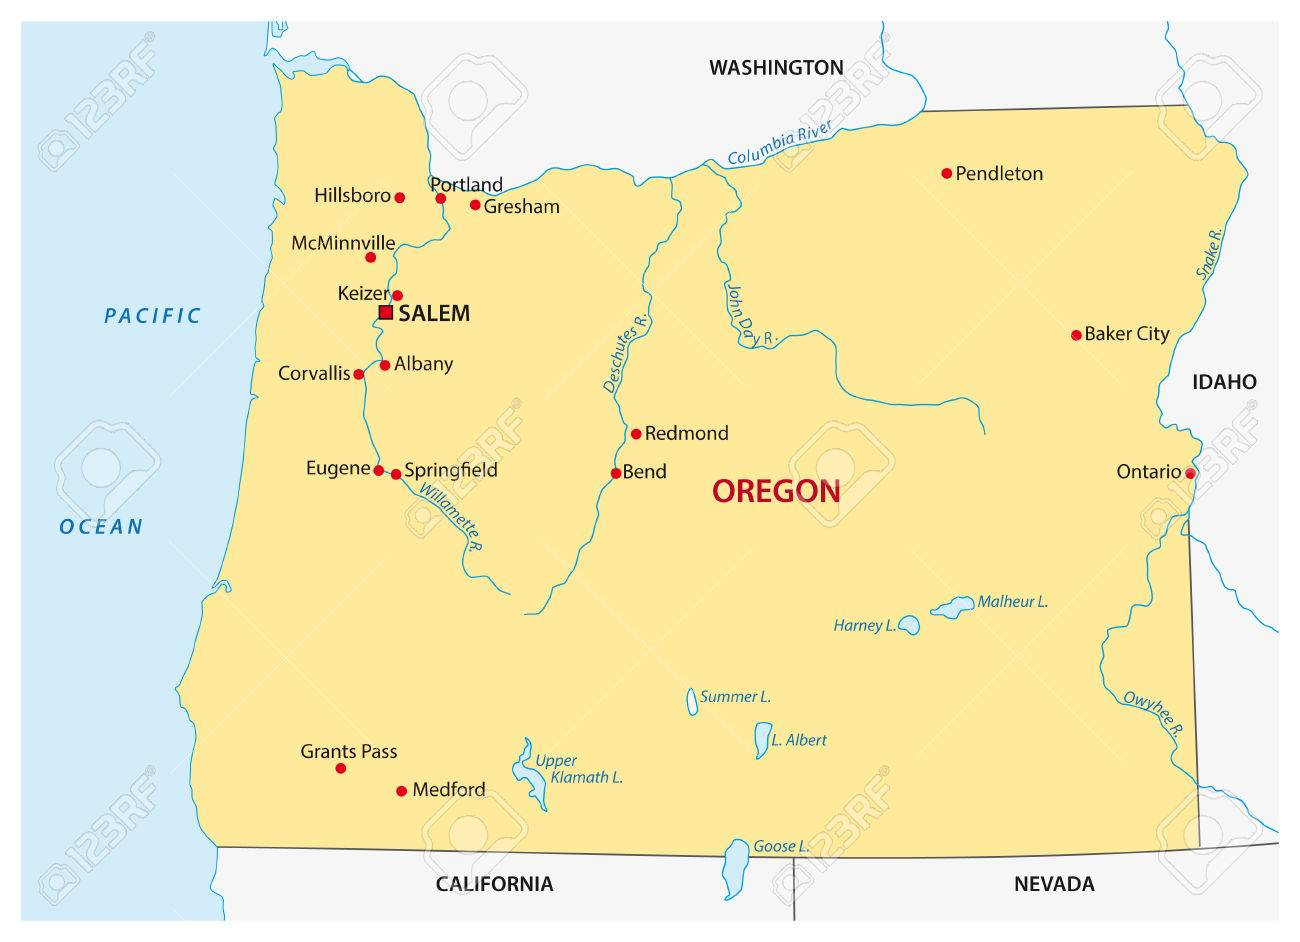 Oregon Map Image.Simple Oregon State Map Royalty Free Cliparts Vectors And Stock